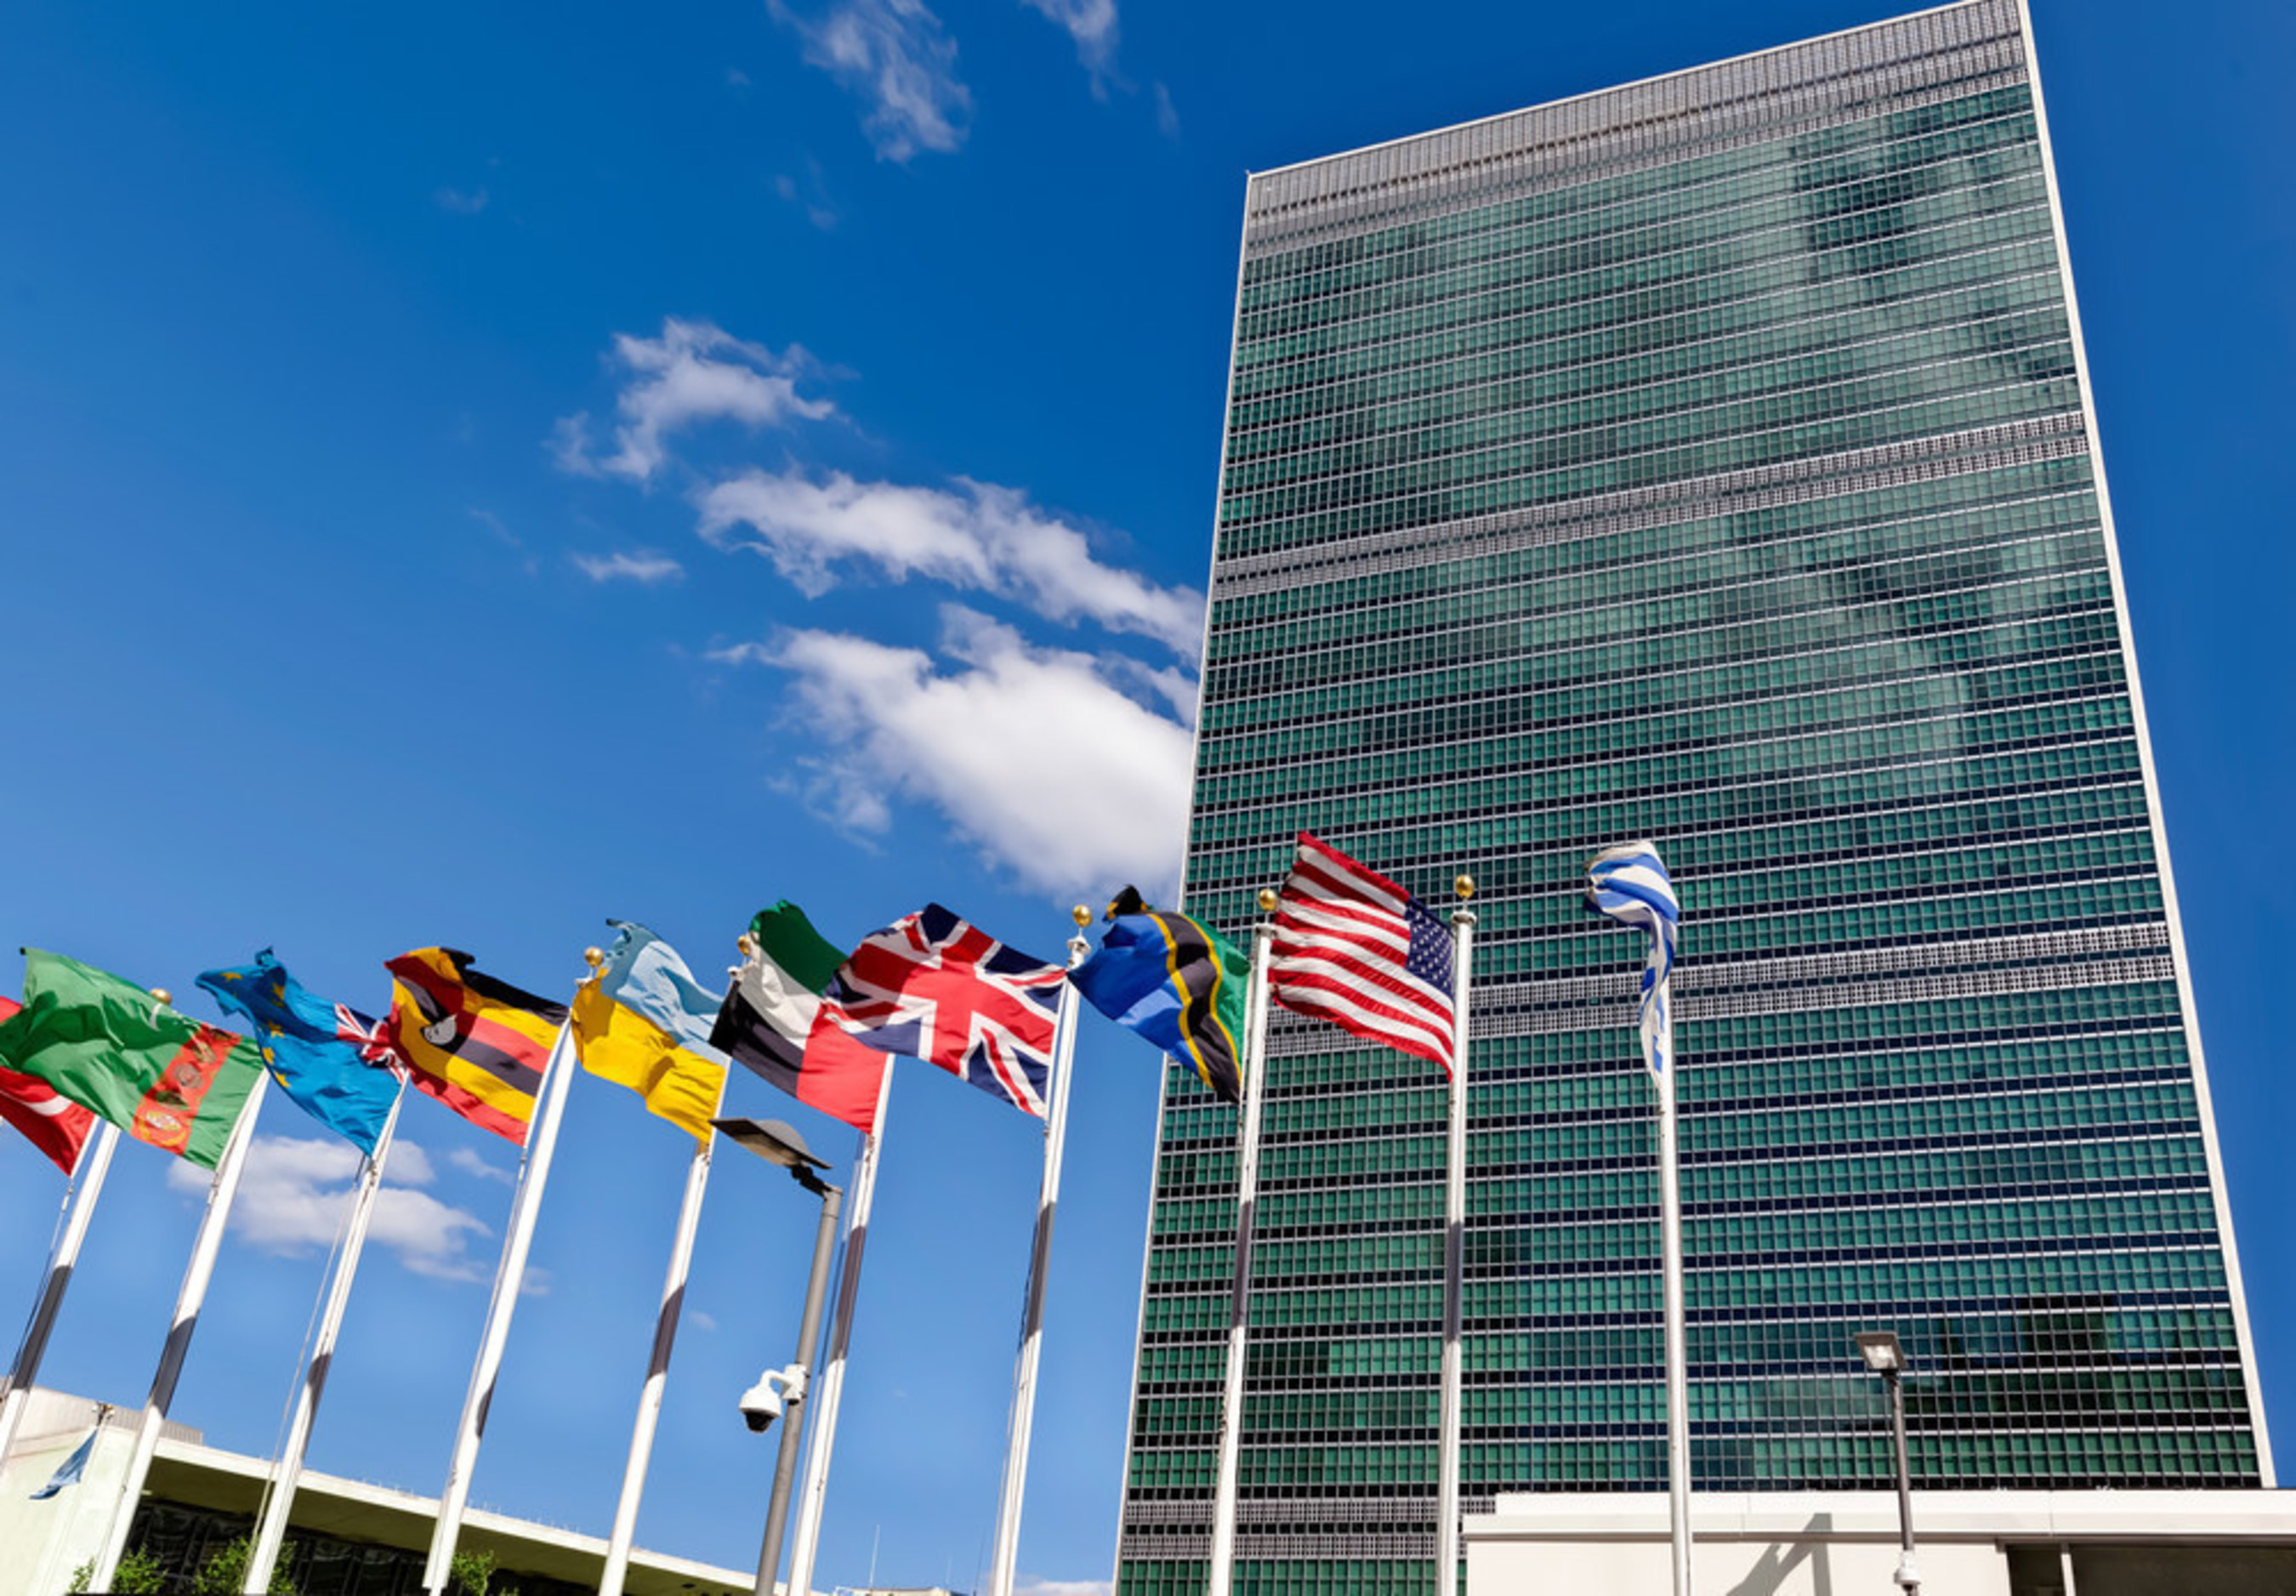 The Summit will be held at the United Nations Headquarters on August 2, 2016, from 3:00 pm - 6:00 pm EDT. To learn more or register for the Peace Summit, please visit www.Stand2Protect.org.